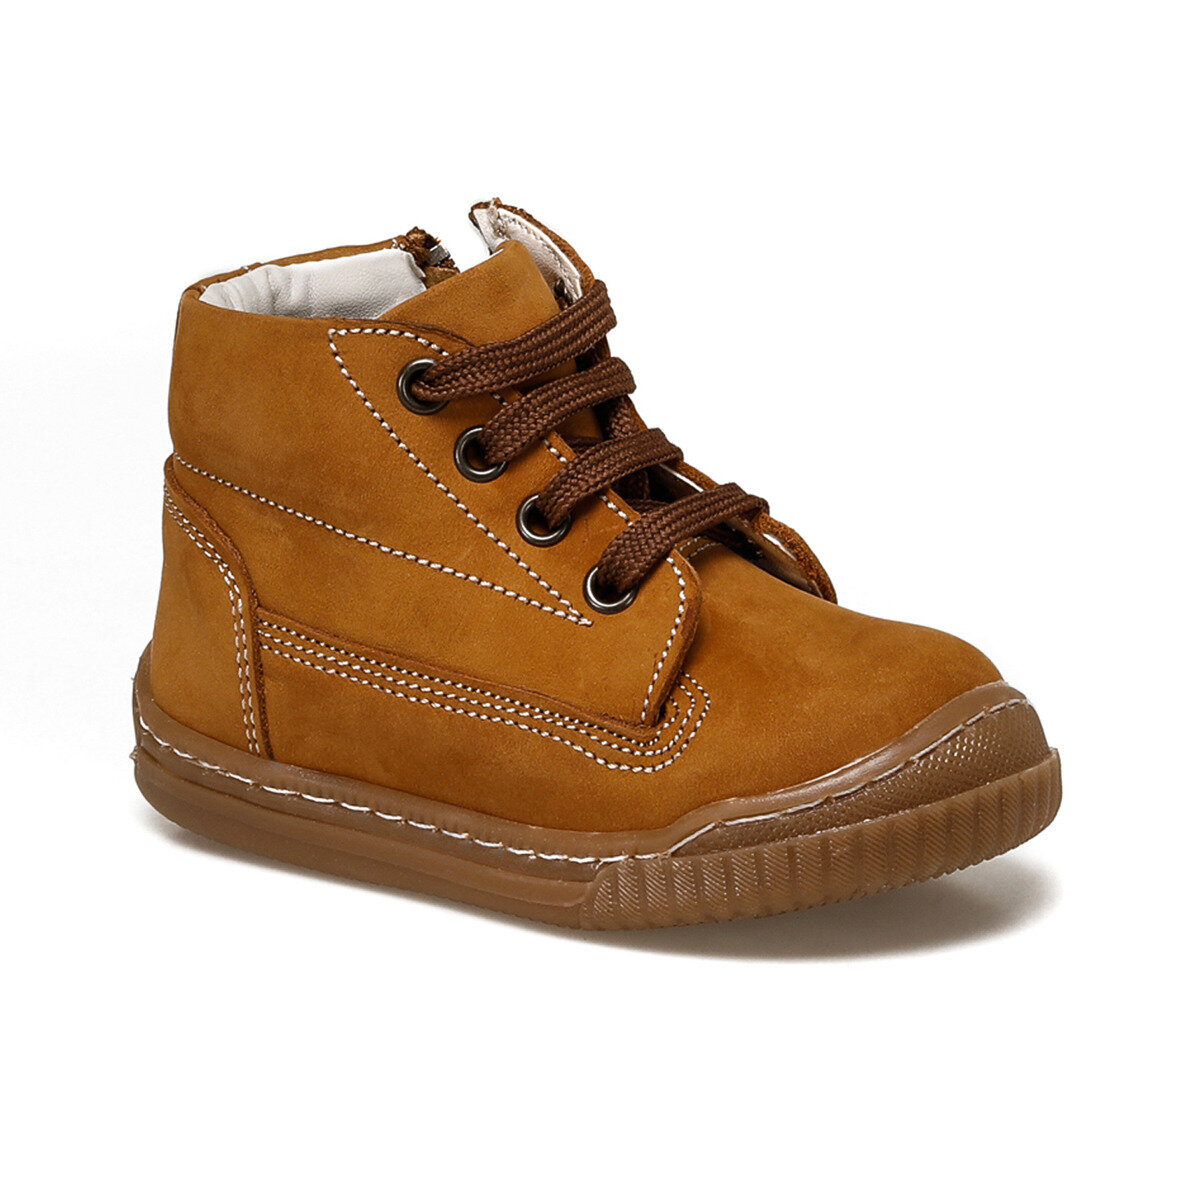 FLO 92.511710.I Camel Male Child Boots Polaris